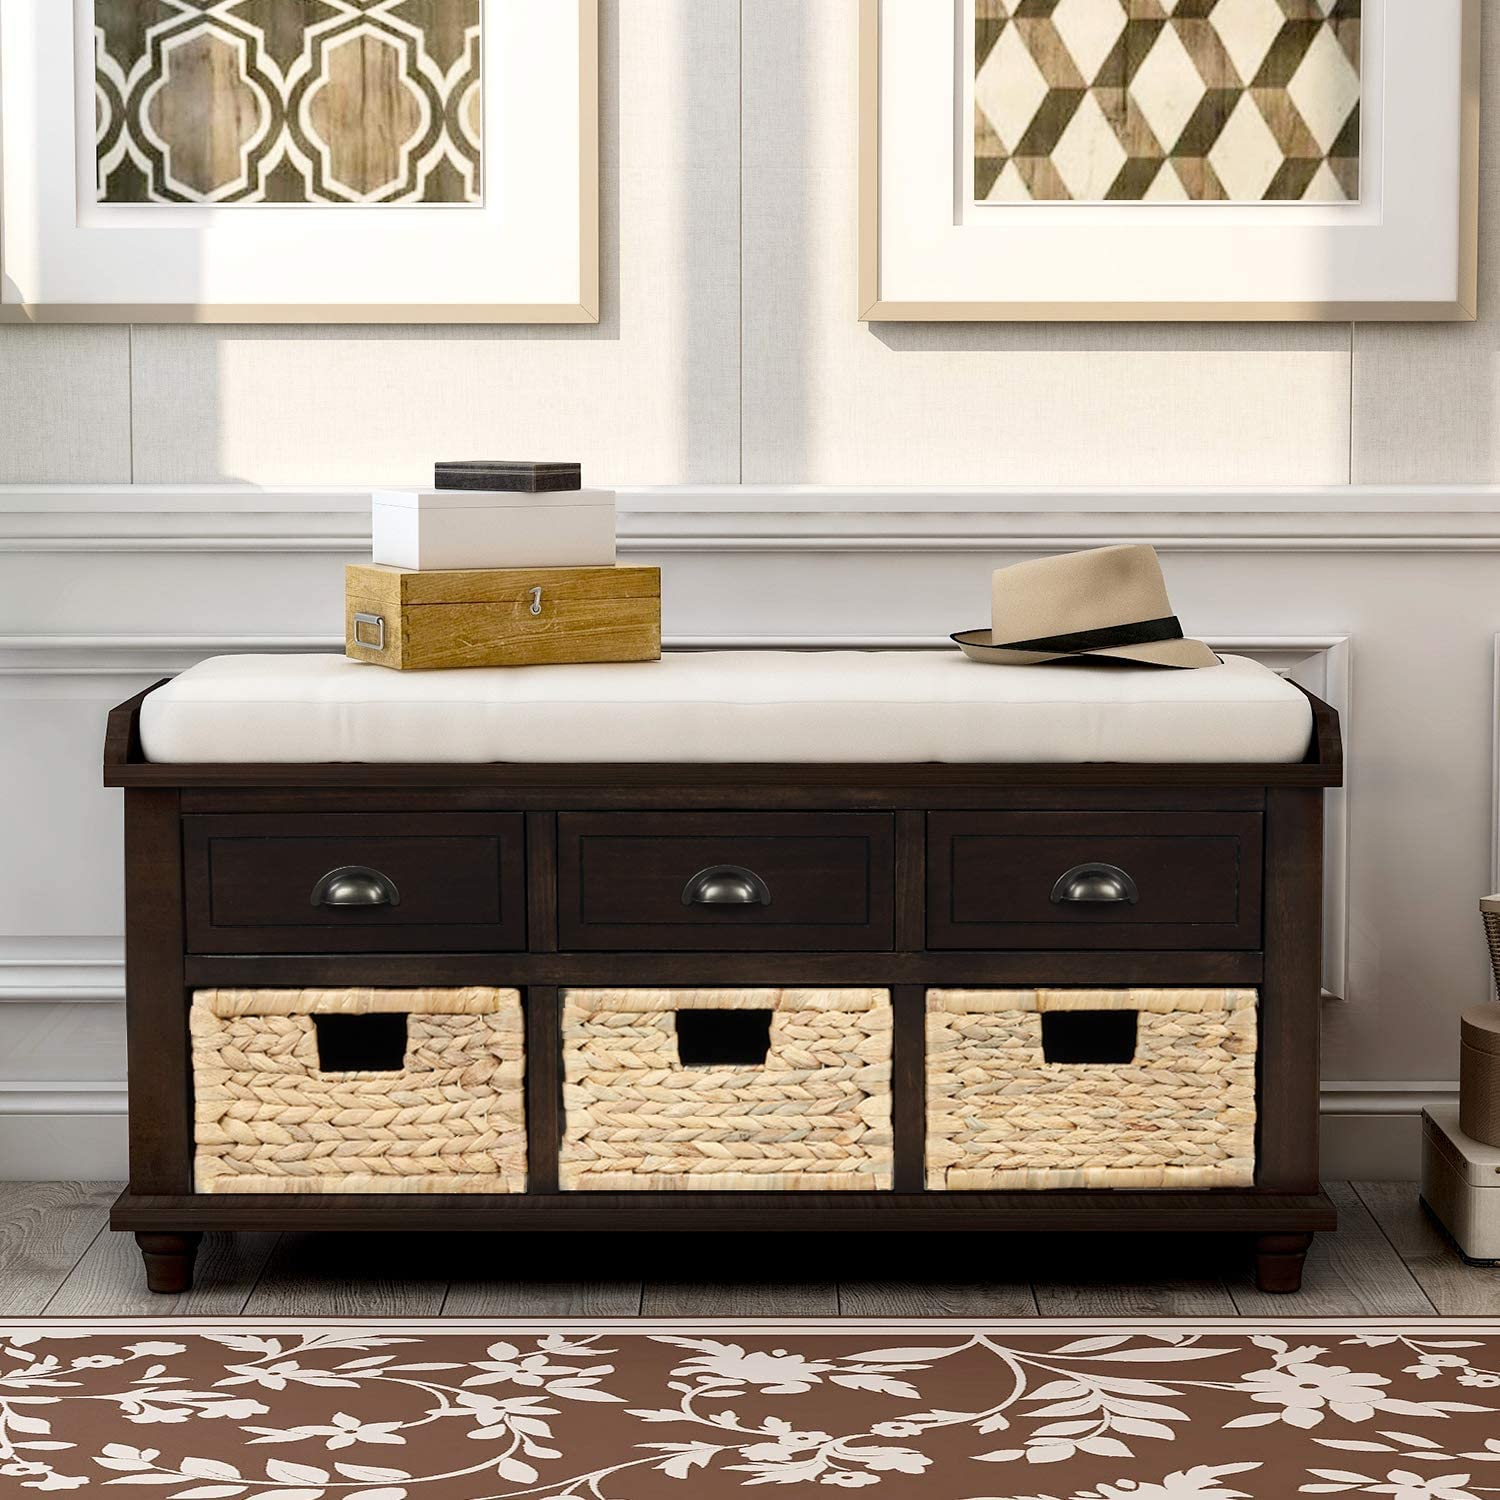 P PURLOVE Rustic Storage Bench 3 Dra New mail order with specialty shop Entryway